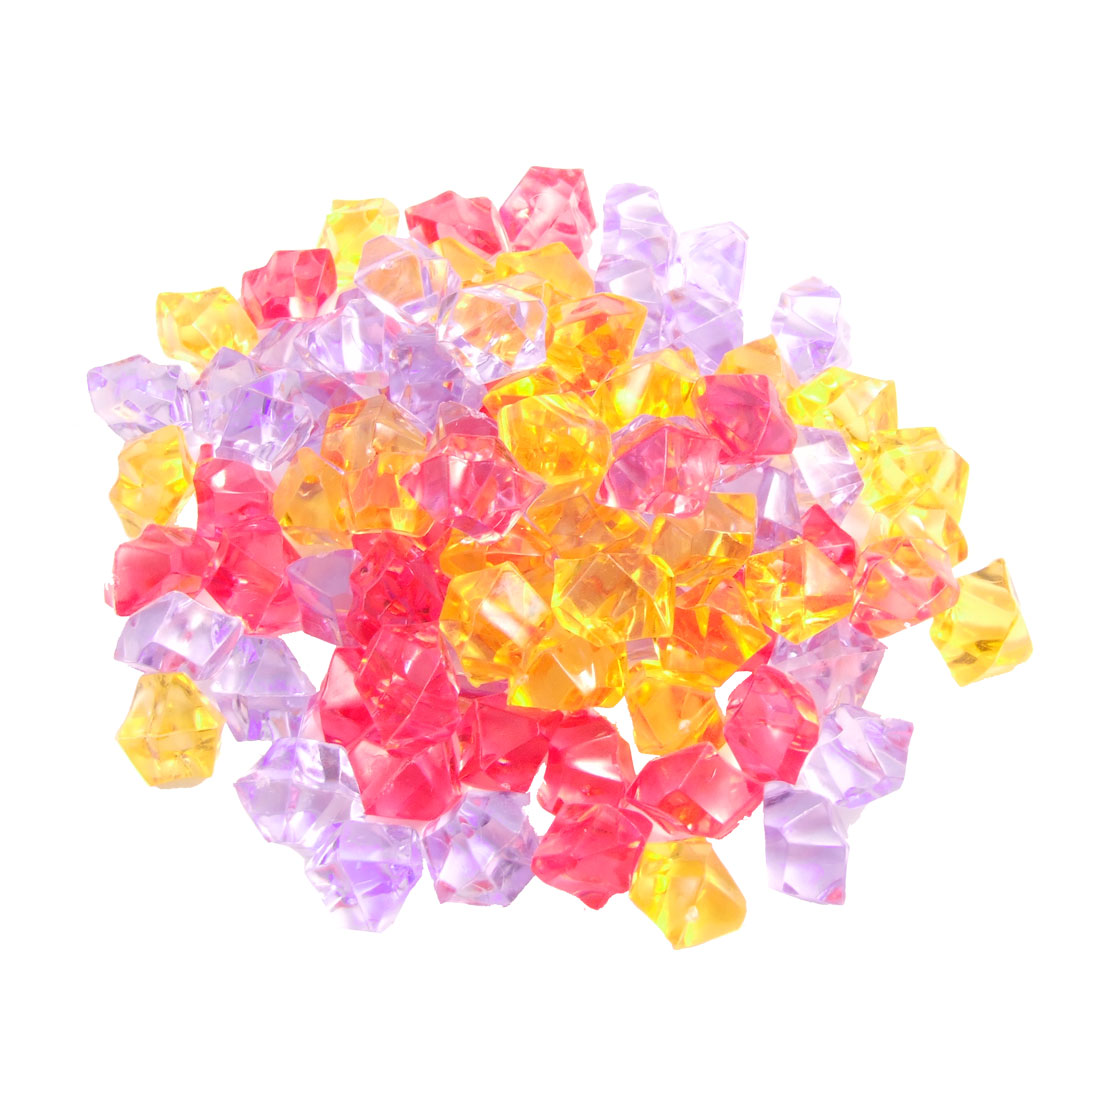 150 Pcs Plastic Crystal Stones Ornament Coloful for Fish Tank